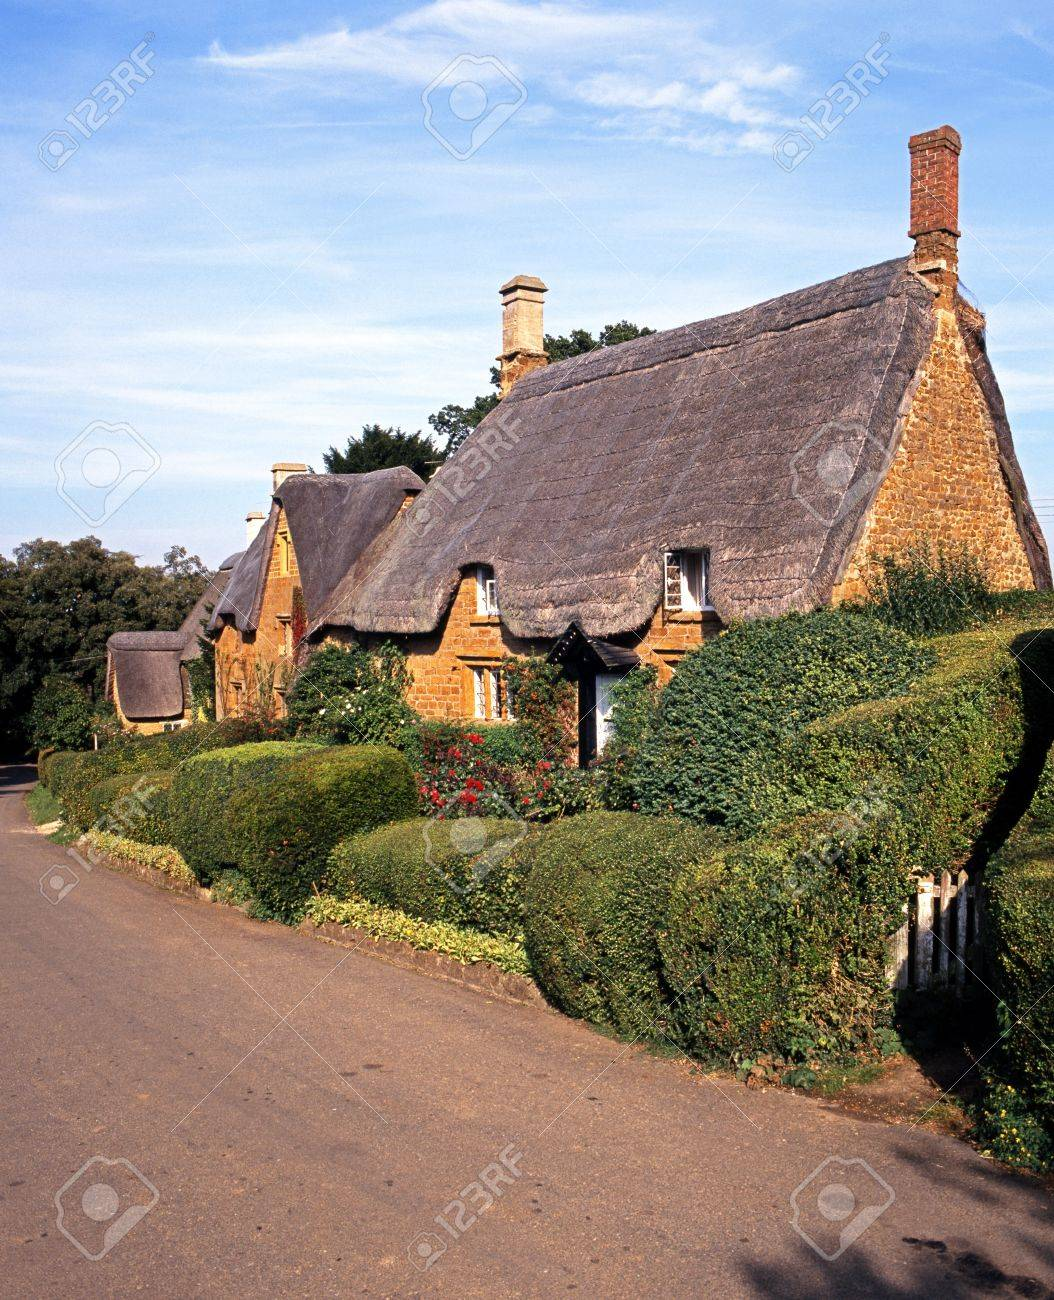 Thatched Cottages Great Tew Oxfordshire Cotswolds England UK Western Europe